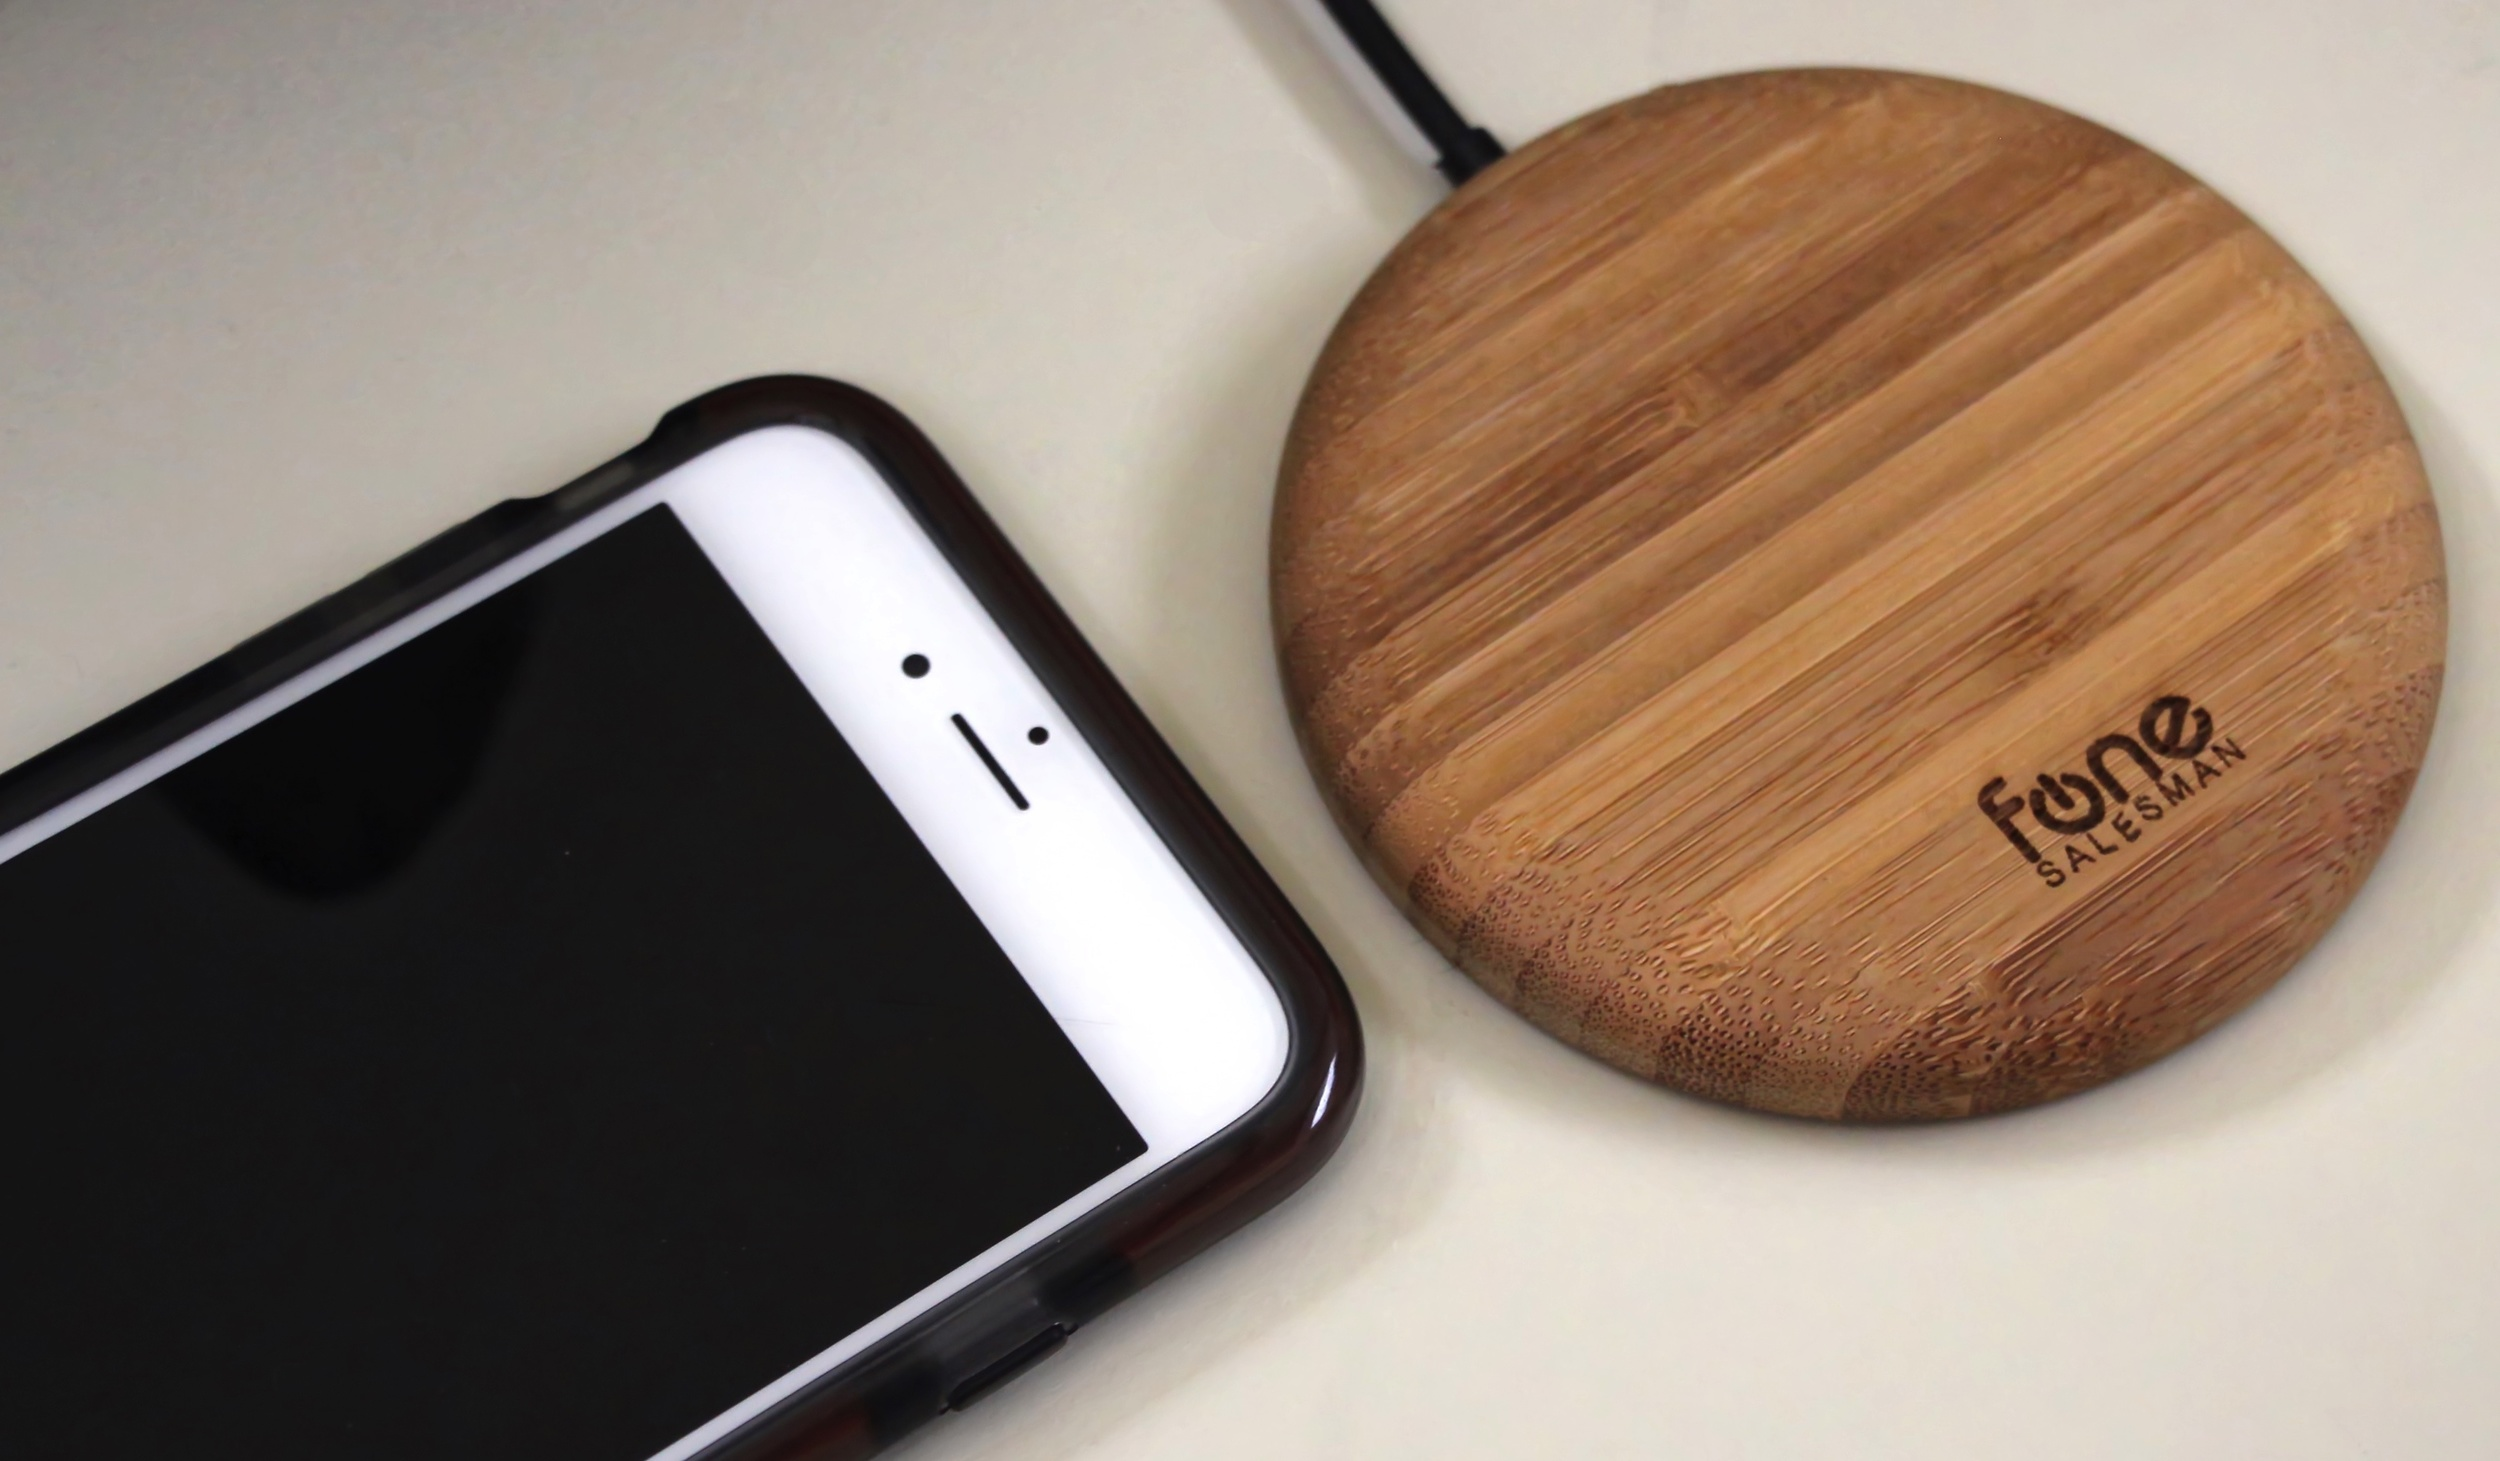 iPhone 6 & Wood Puck Bamboo Edition Qi charger, Photo ©2105 Steven Sande